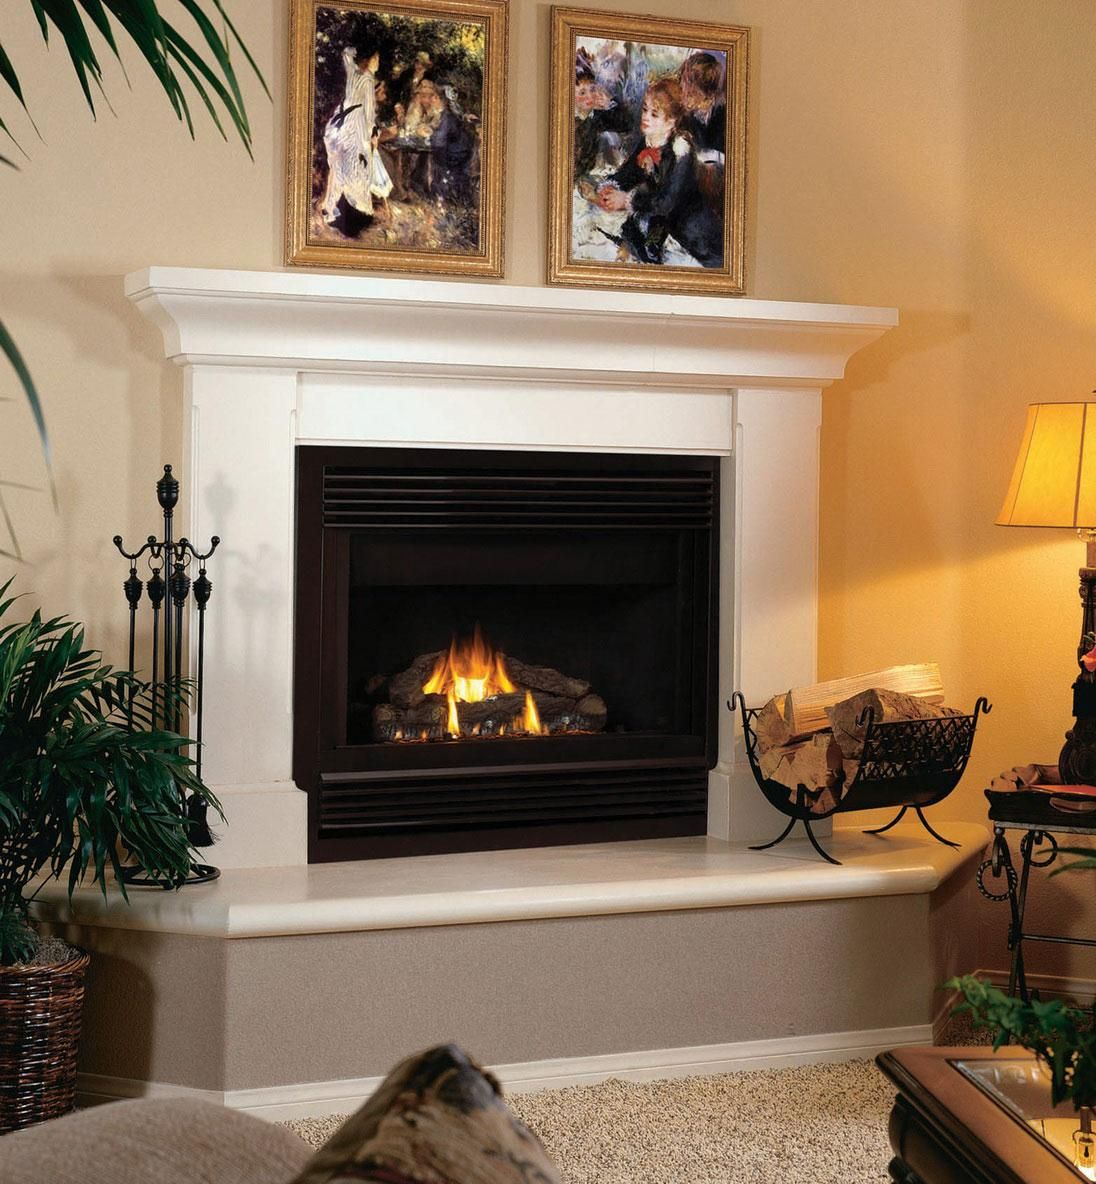 Mantel Decorations IDEAS INSPIRATIONS Amazing Elegant White